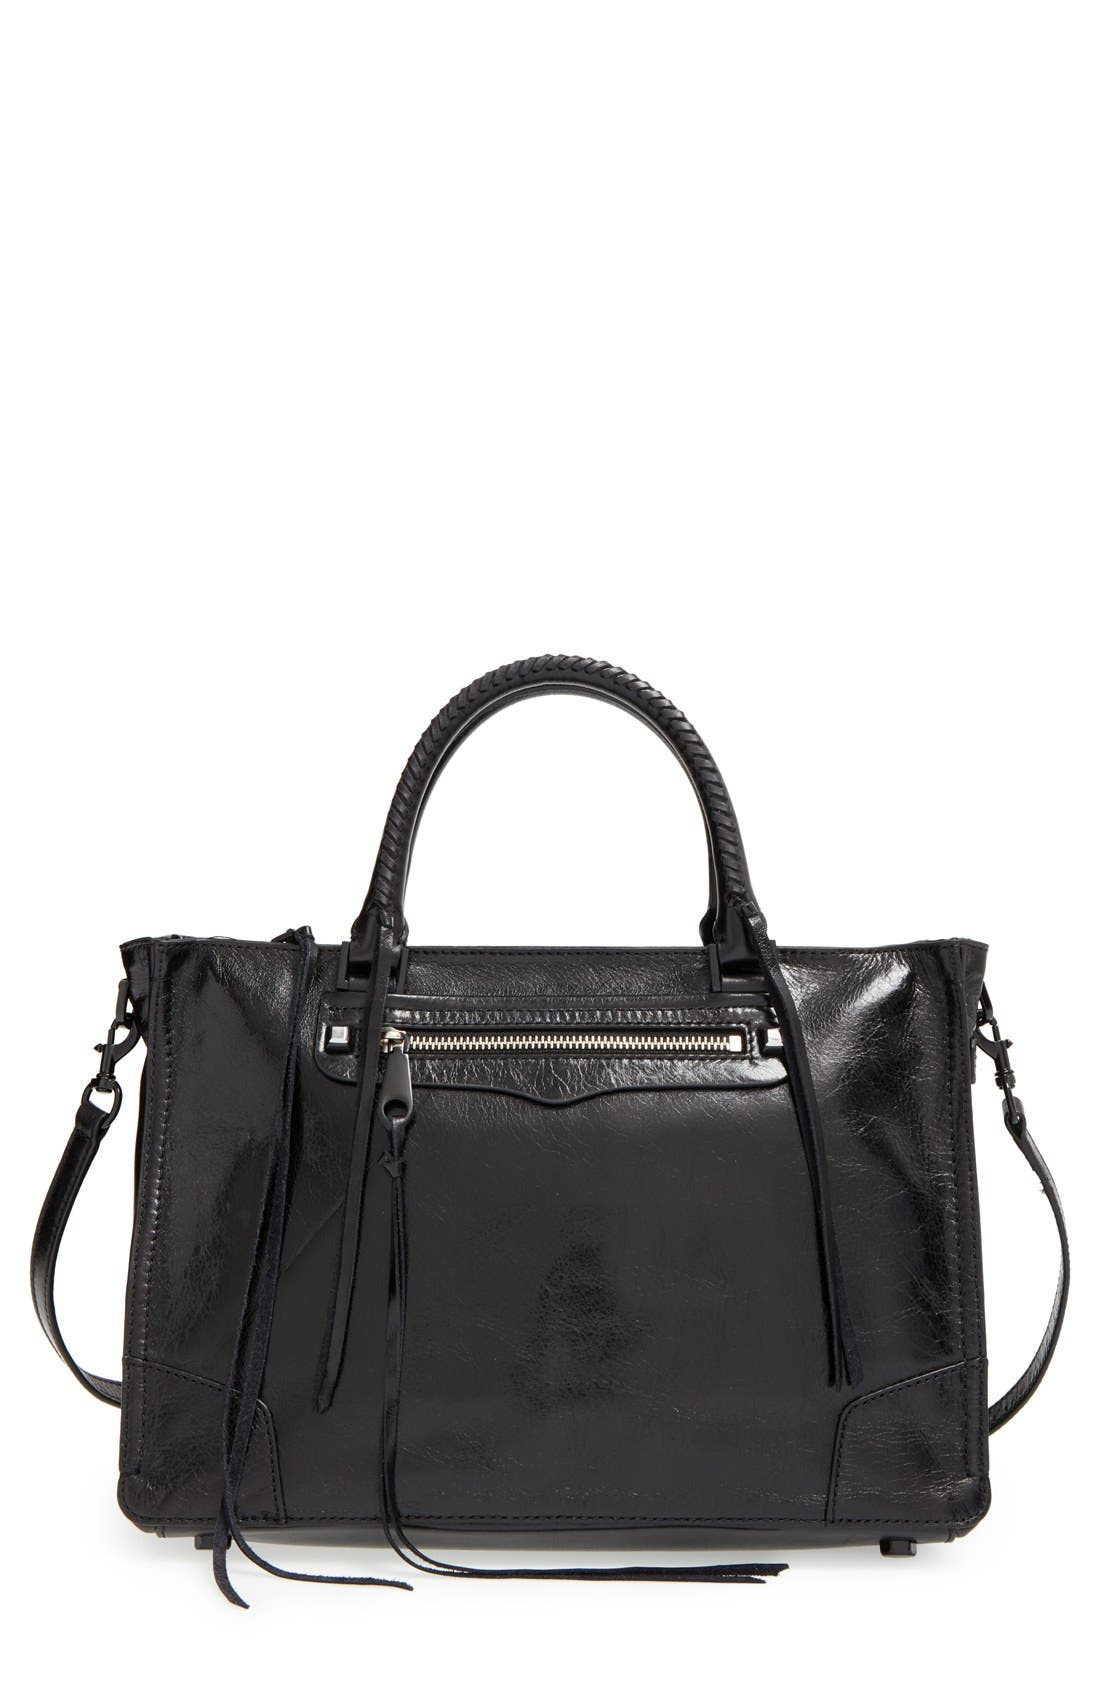 Main Image - Rebecca Minkoff 'Regan' Satchel